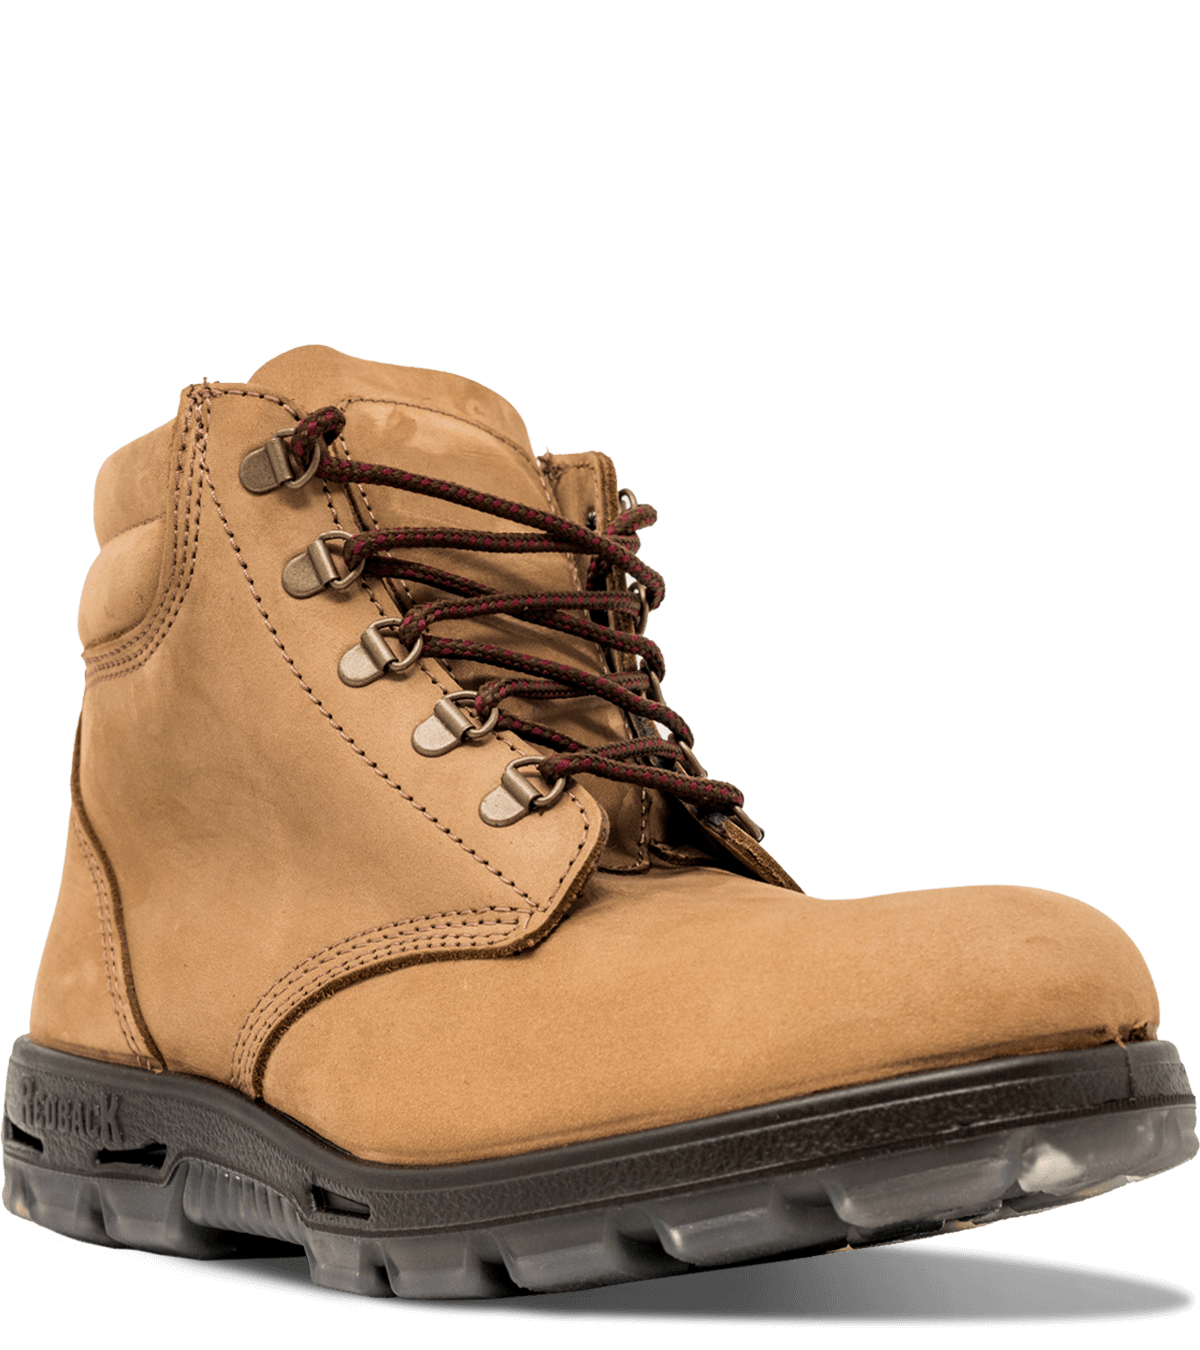 Work boots png. Outland steel toe redback